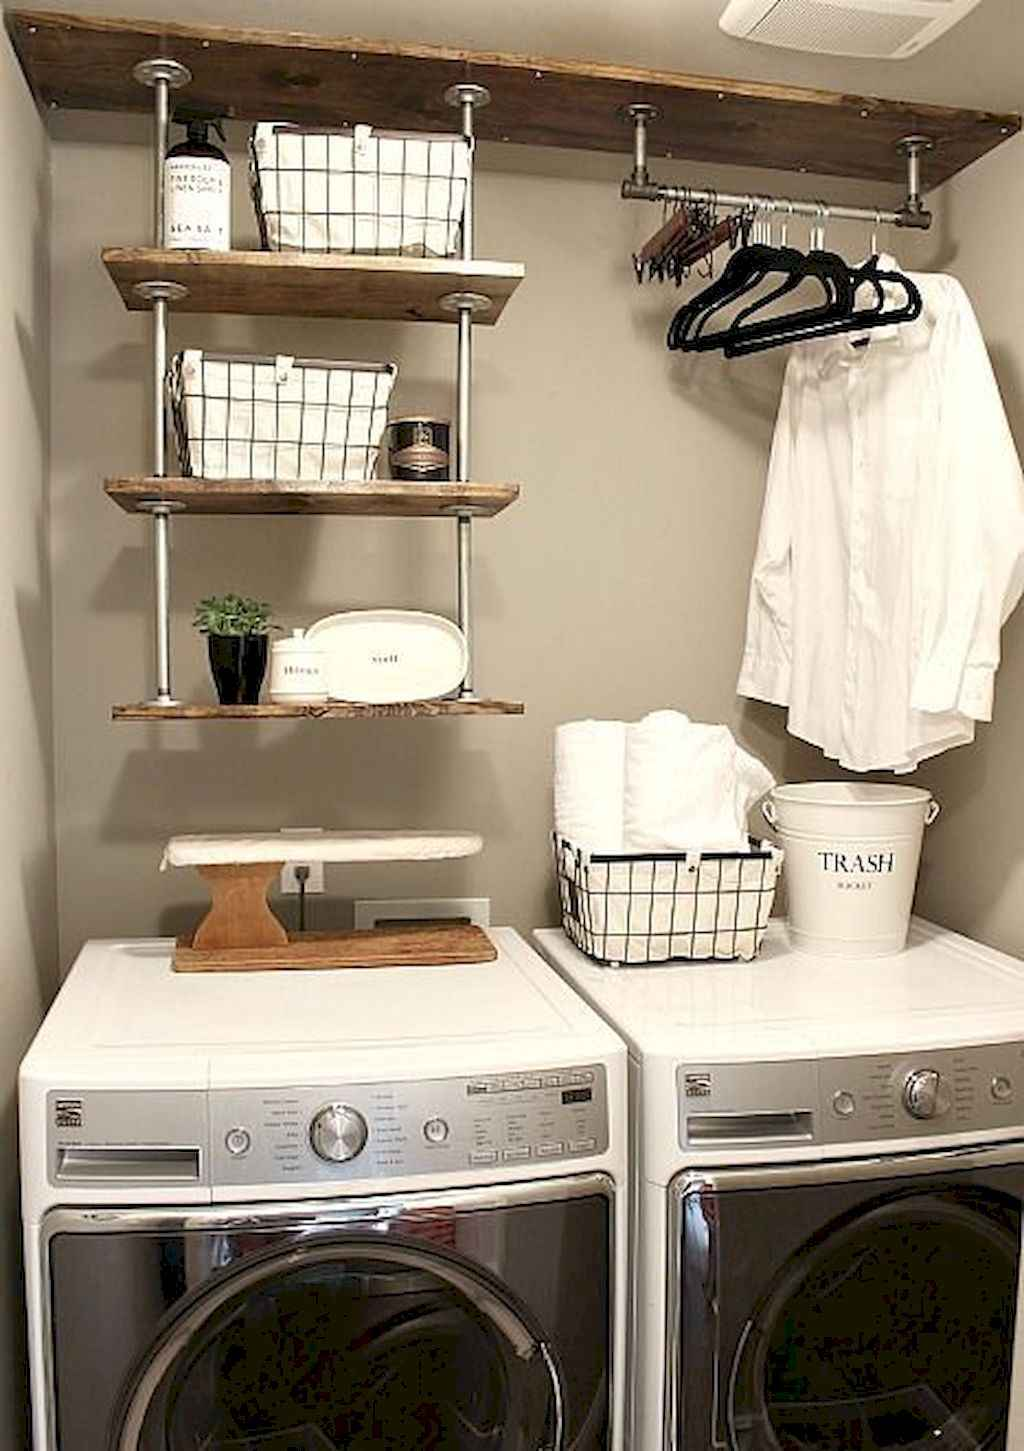 45 Rustic Farmhouse Laundry Room Design Ideas and Makeover (12)